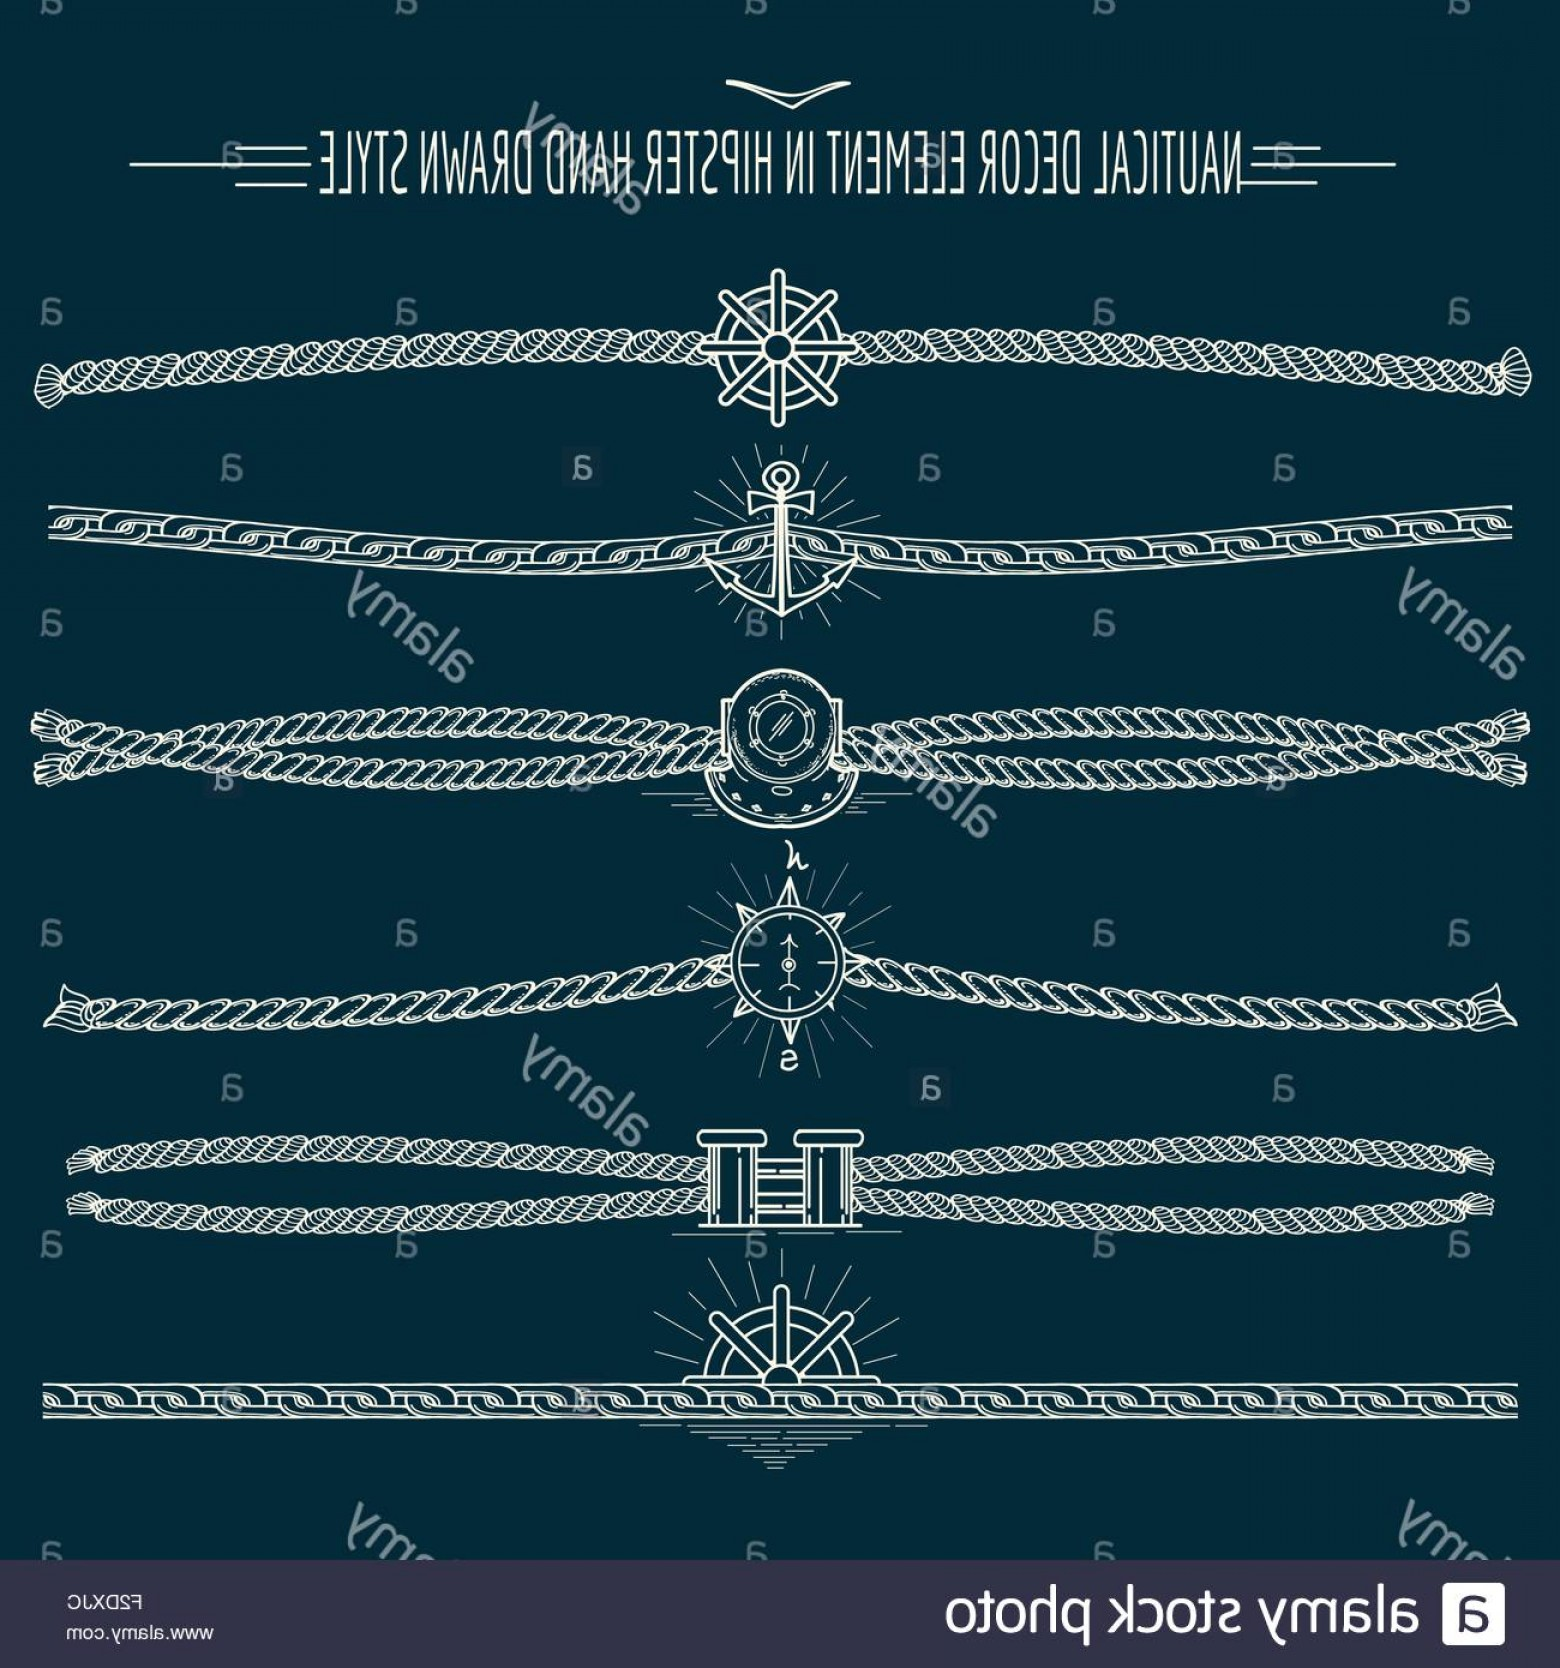 Nautical Text Divider Vector: Stock Photo Set Of Nautical Ropes And Chains Decor Elements In Hipster Style Hand